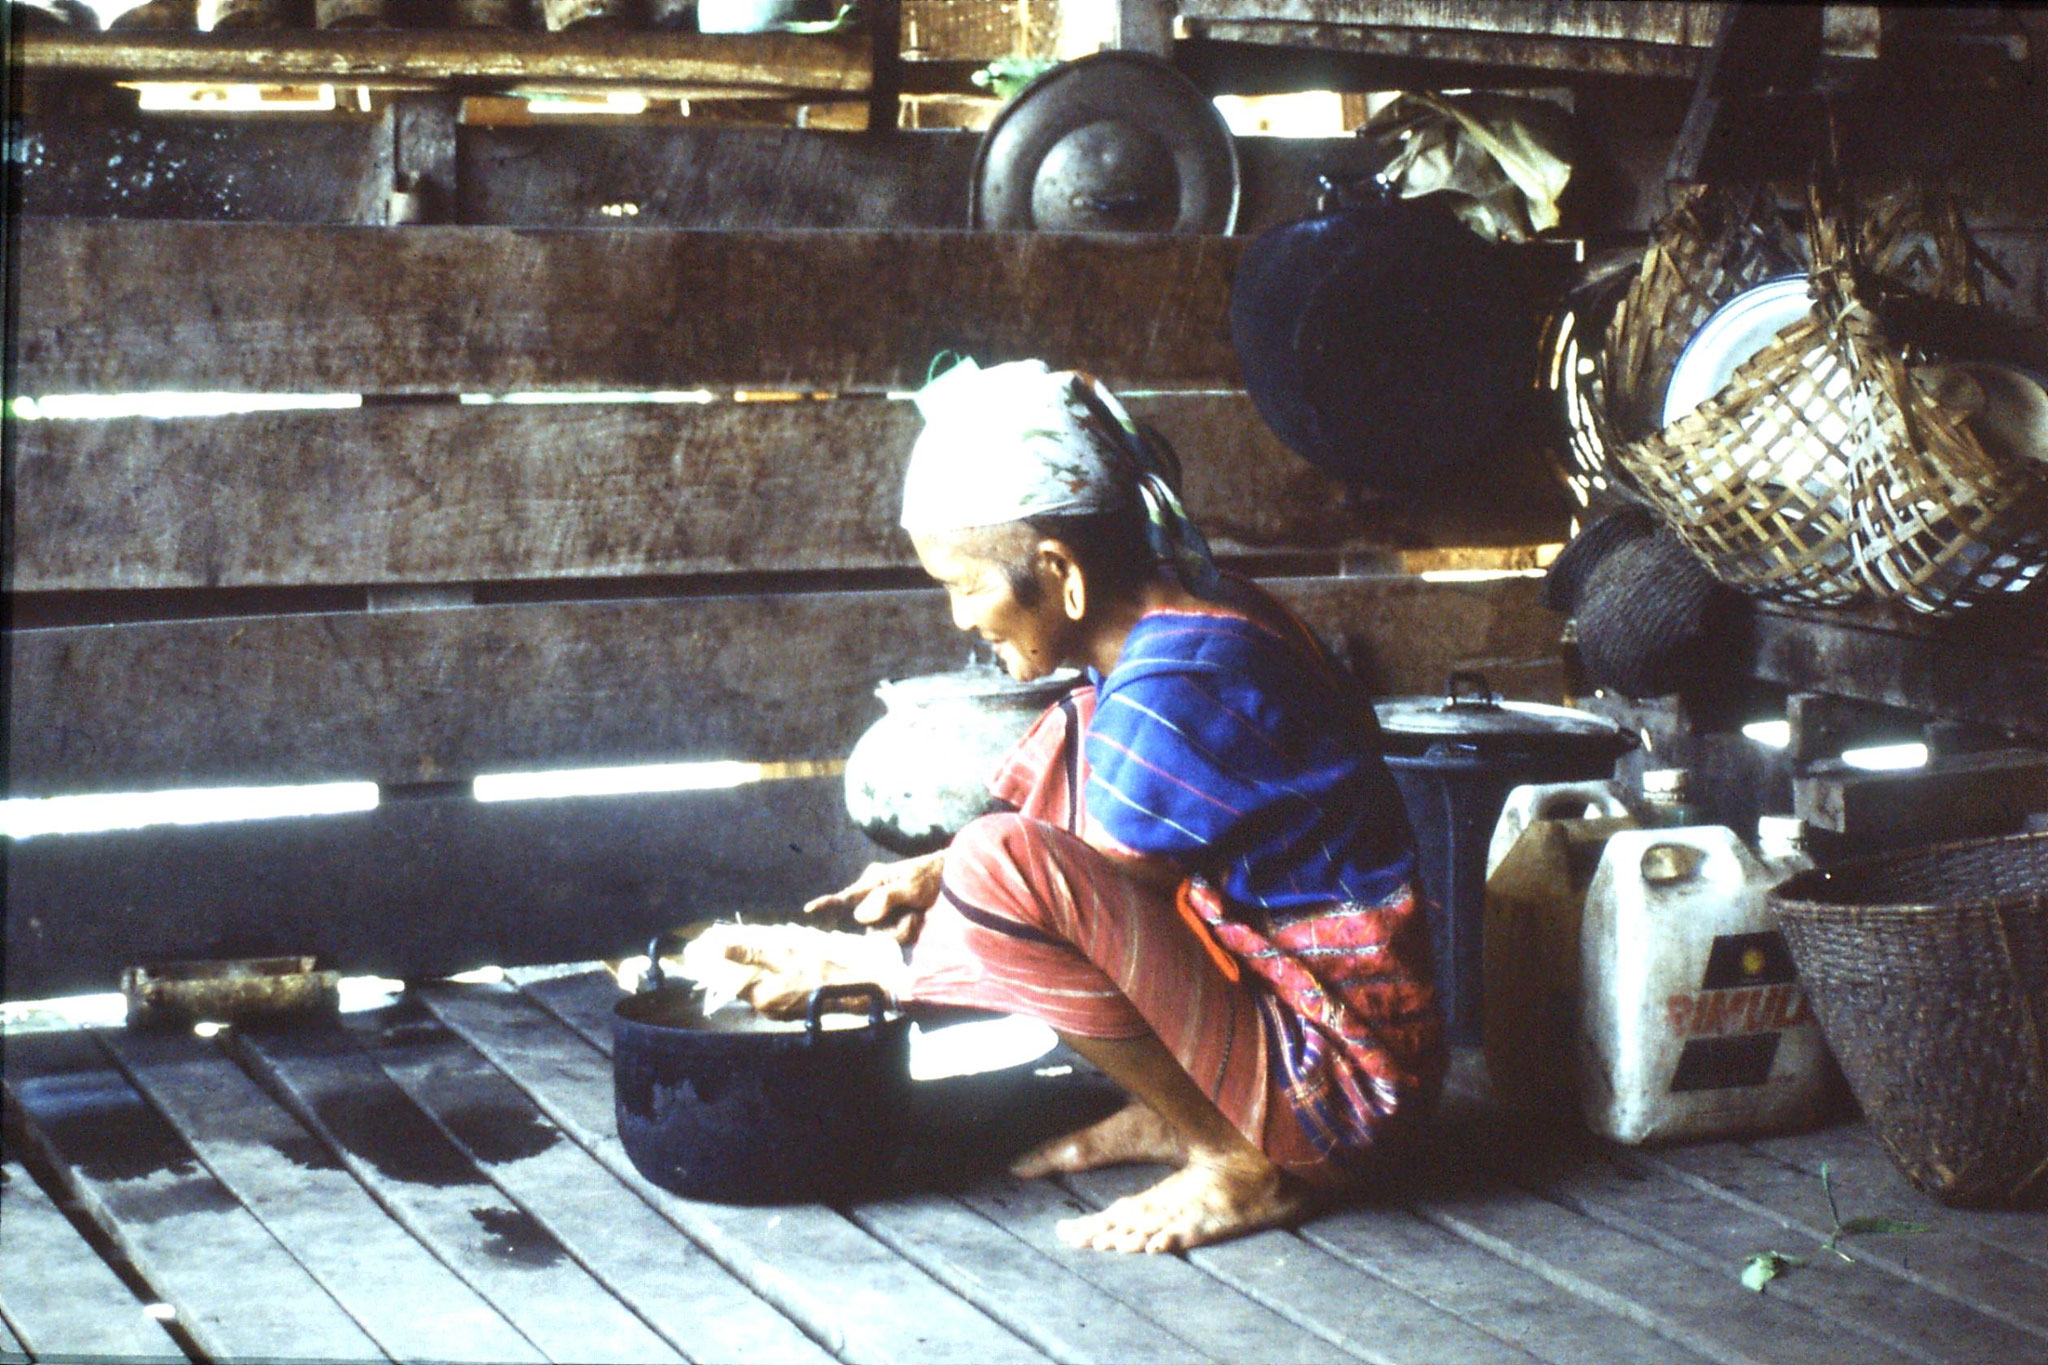 12/6/1990: 22: Trek - Hue Kom Karen village, chopping bamboo shoots